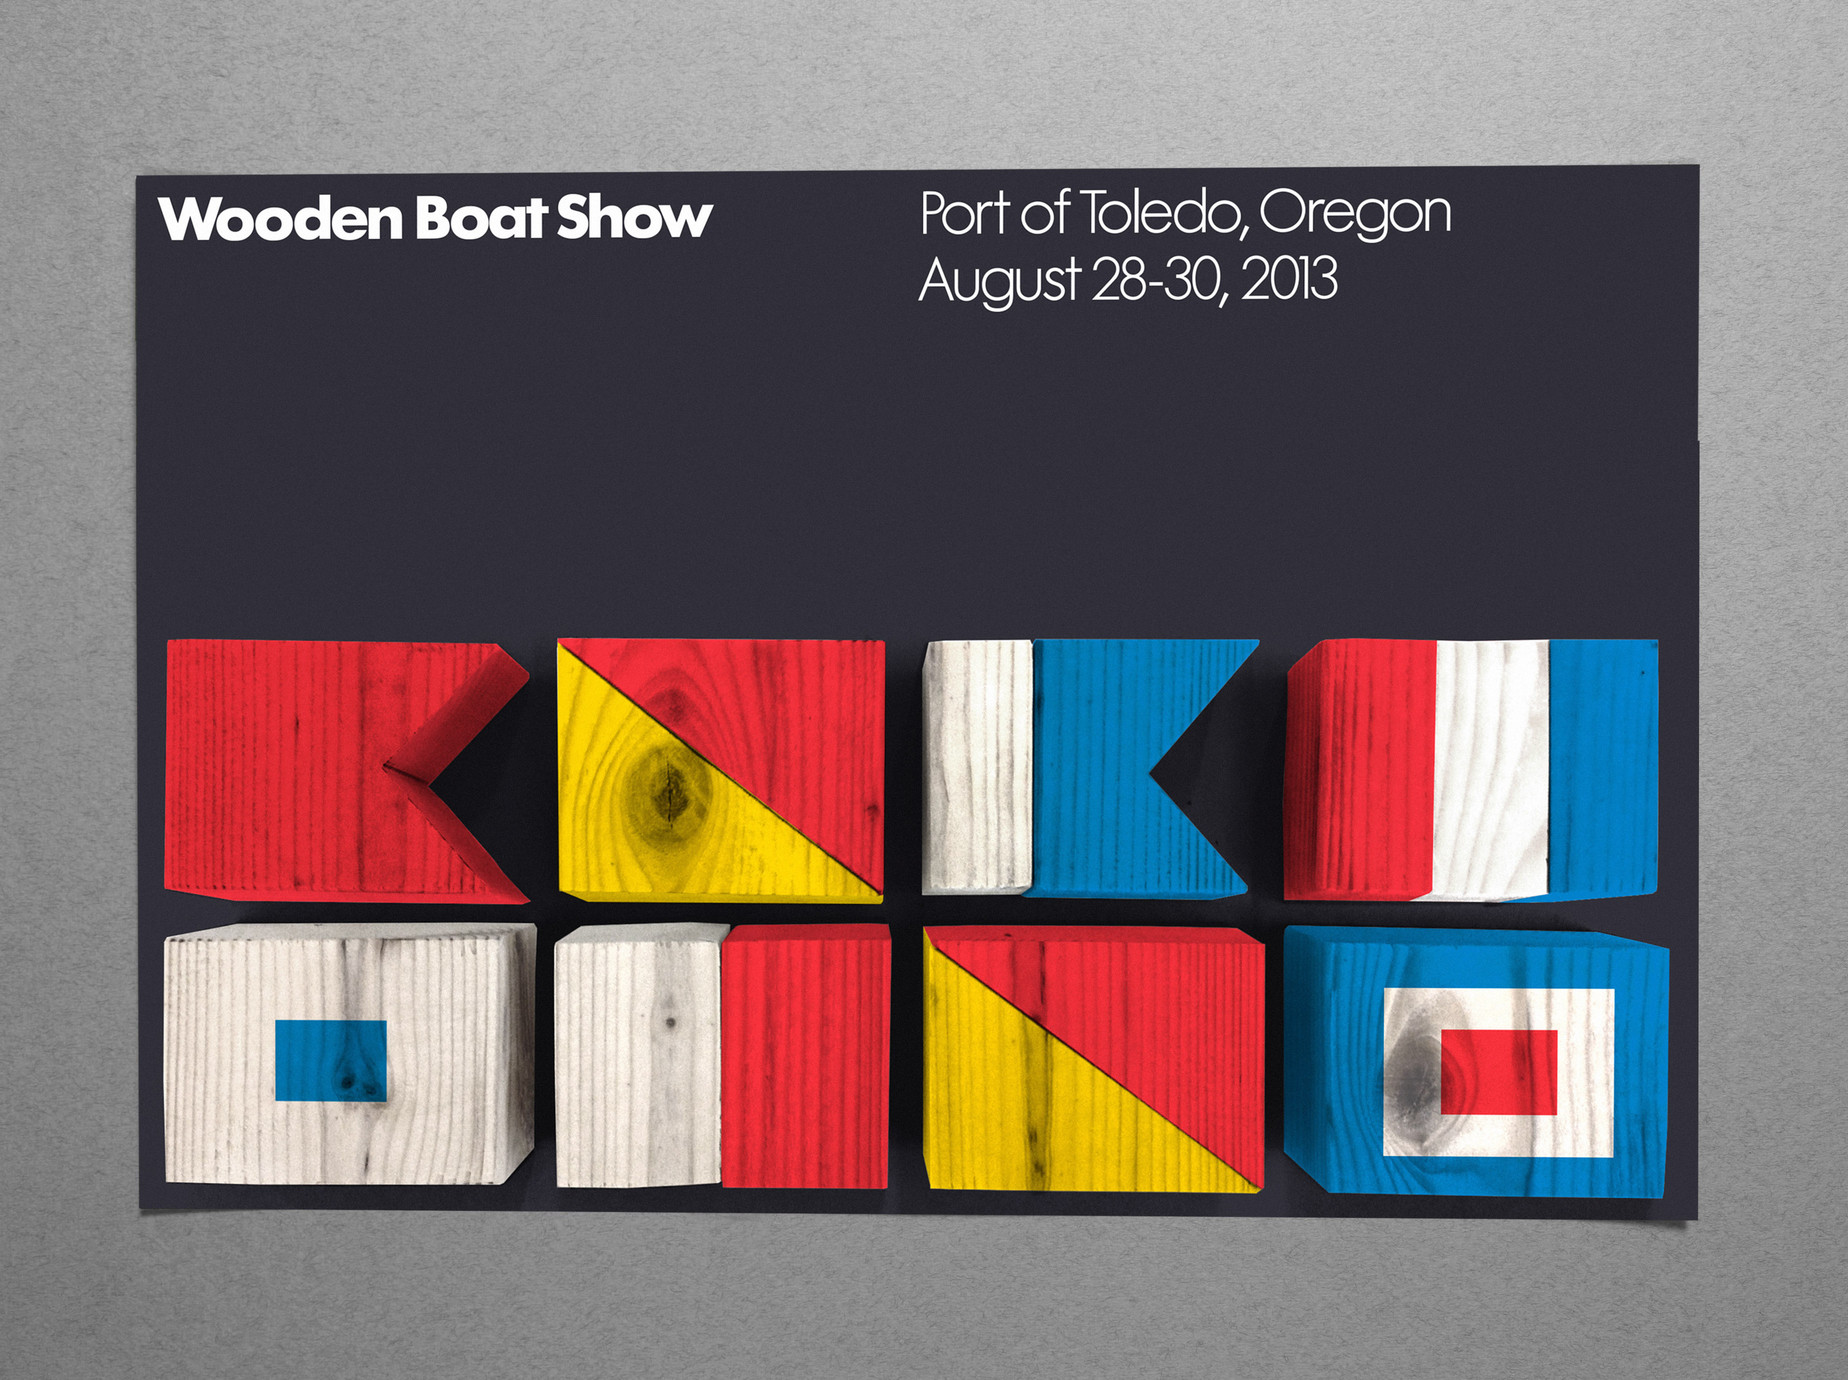 Wooden Boat Show - Promotion project image